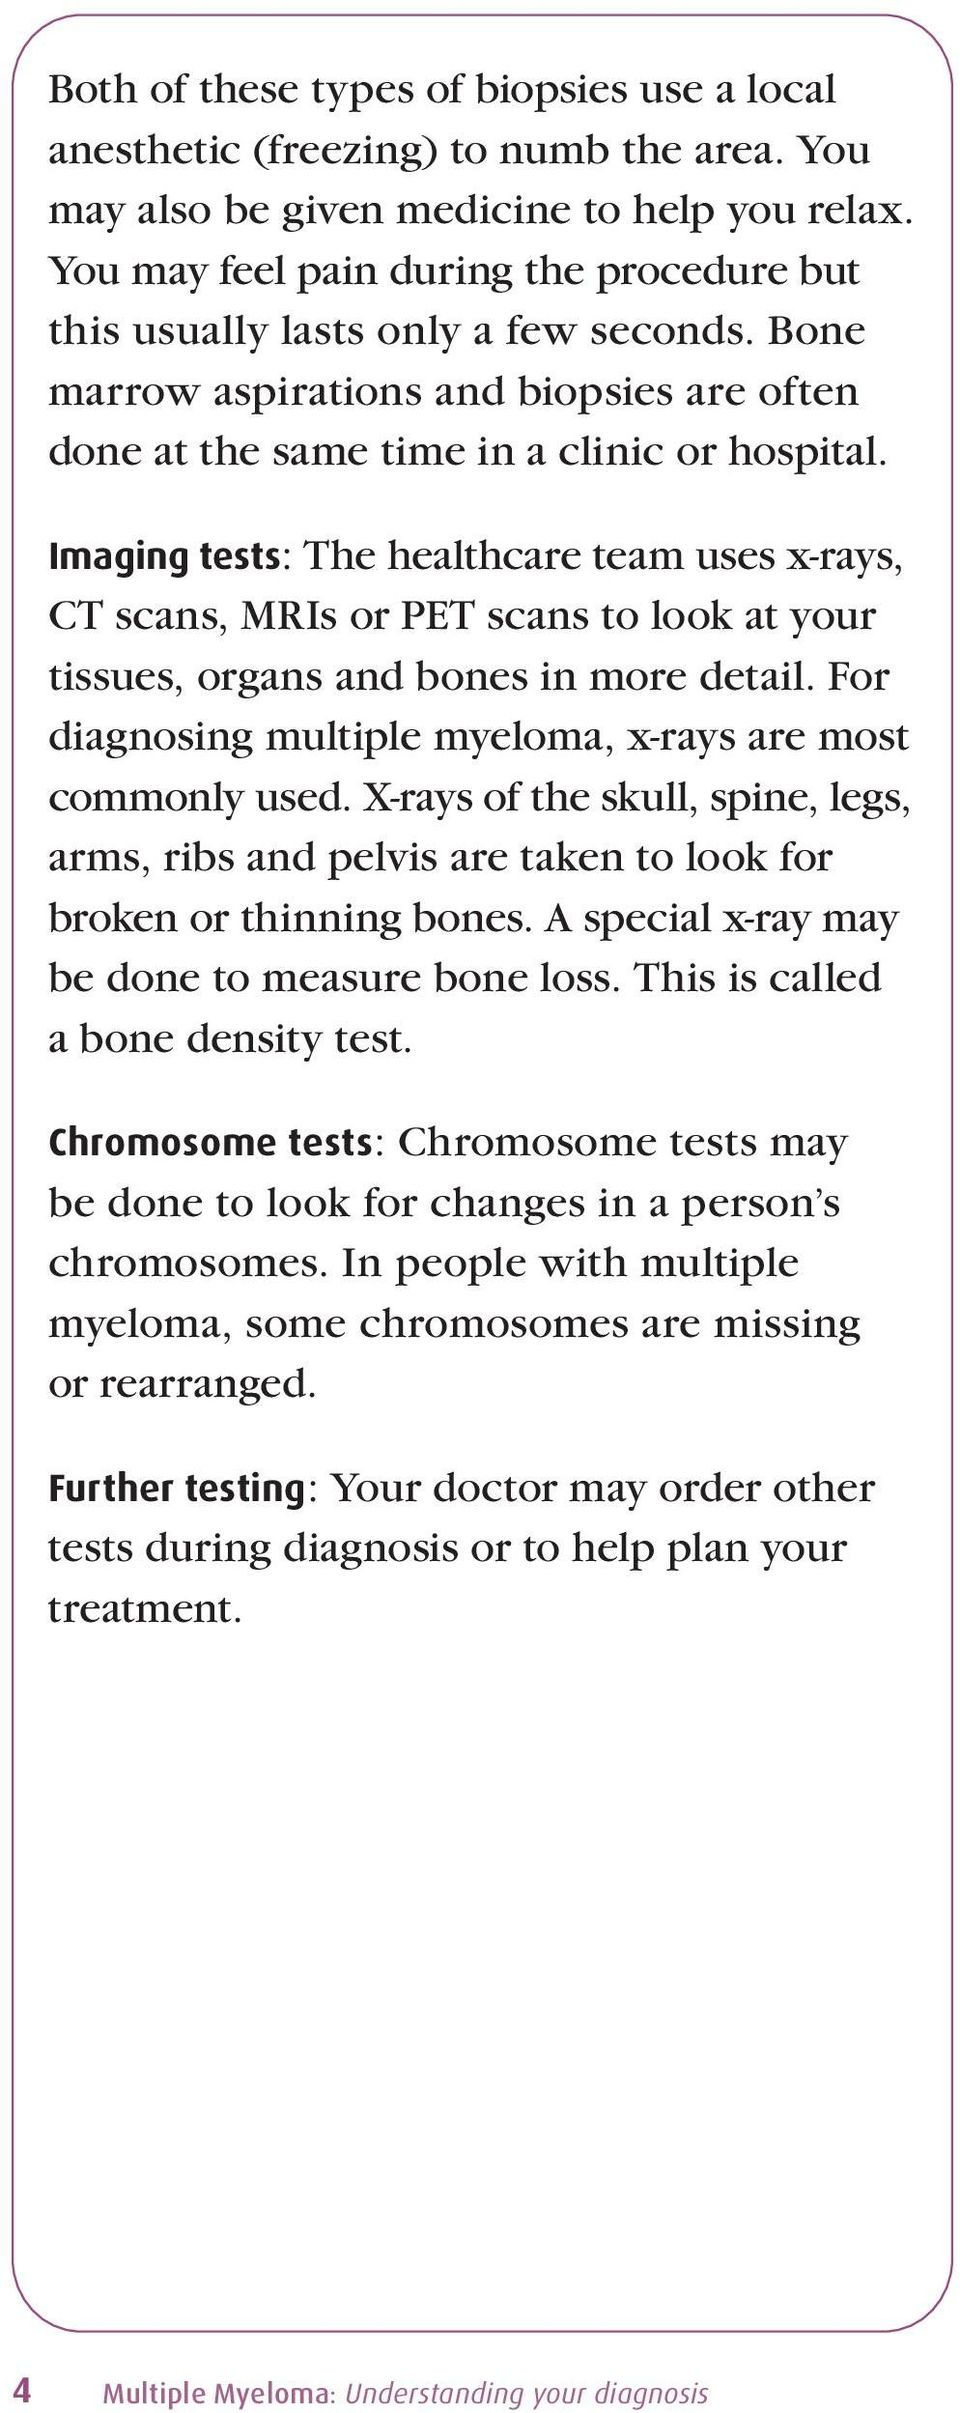 Imaging tests: The healthcare team uses x-rays, CT scans, MRIs or PET scans to look at your tissues, organs and bones in more detail. For diagnosing multiple myeloma, x-rays are most commonly used.